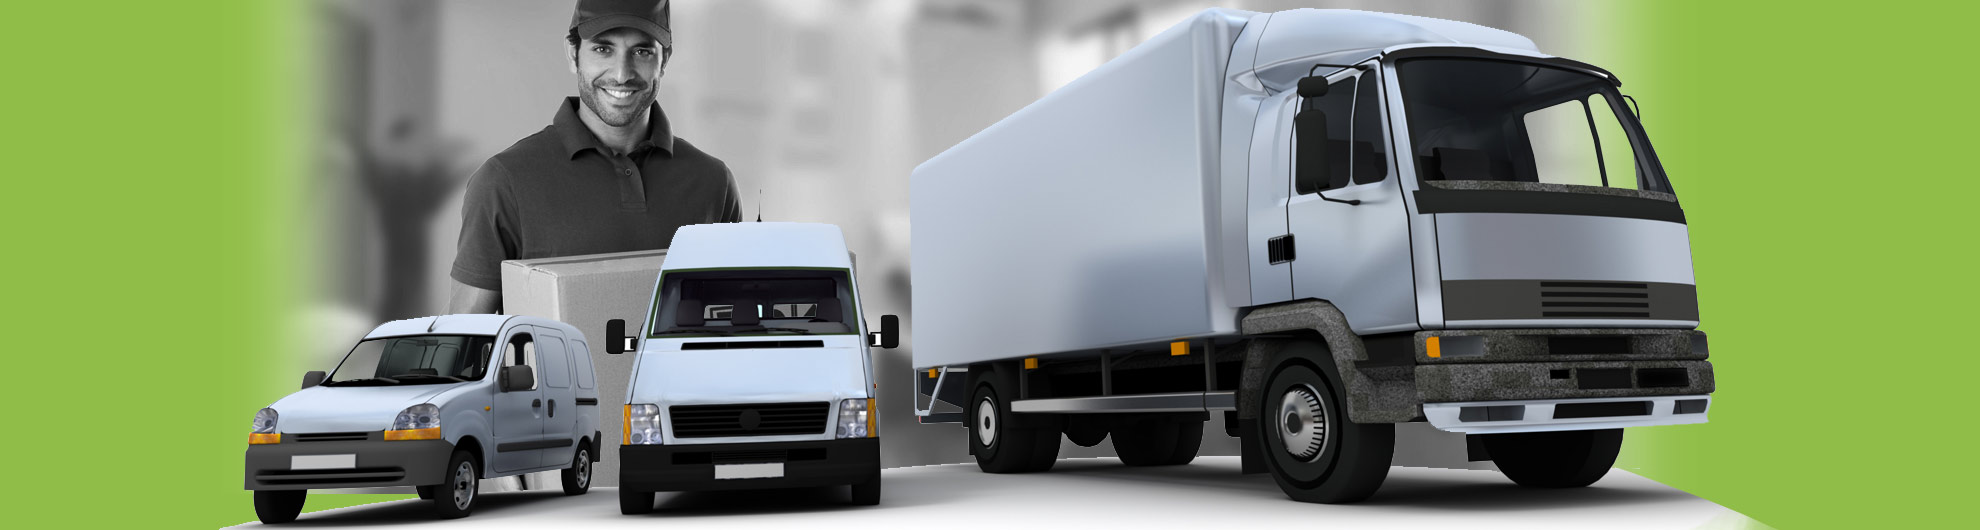 Kaskinen  International Movers - Shipping Companies